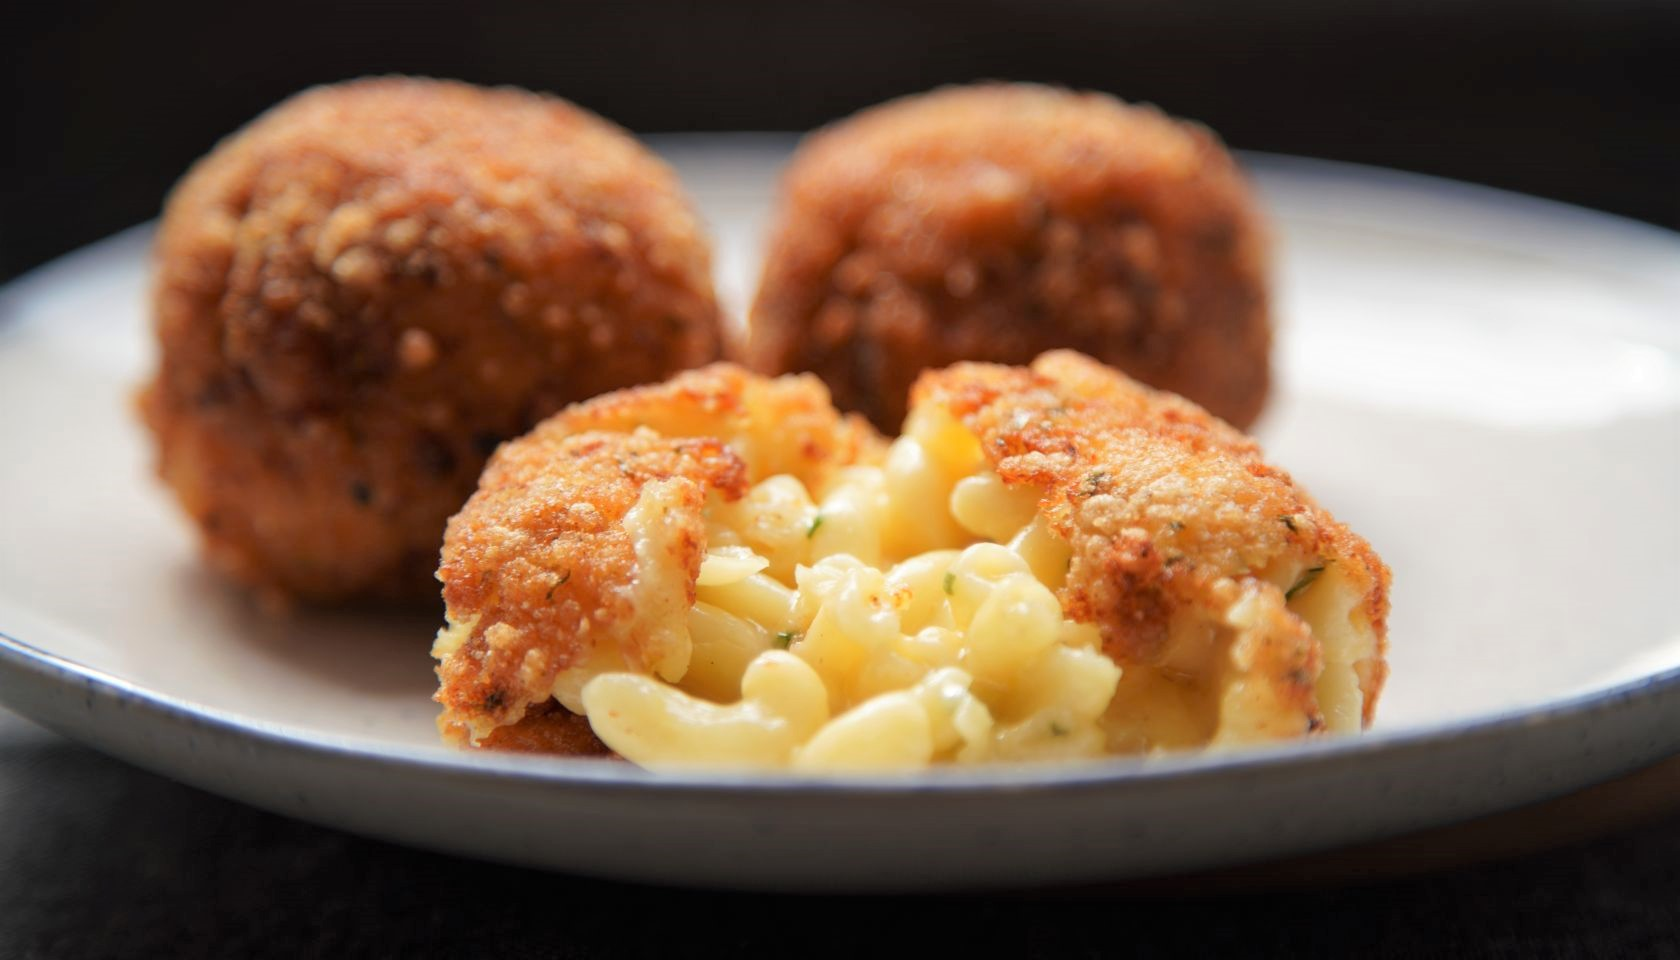 Chef JJ's Deep Fried Mac and Cheese Balls courtesy Cleo TV